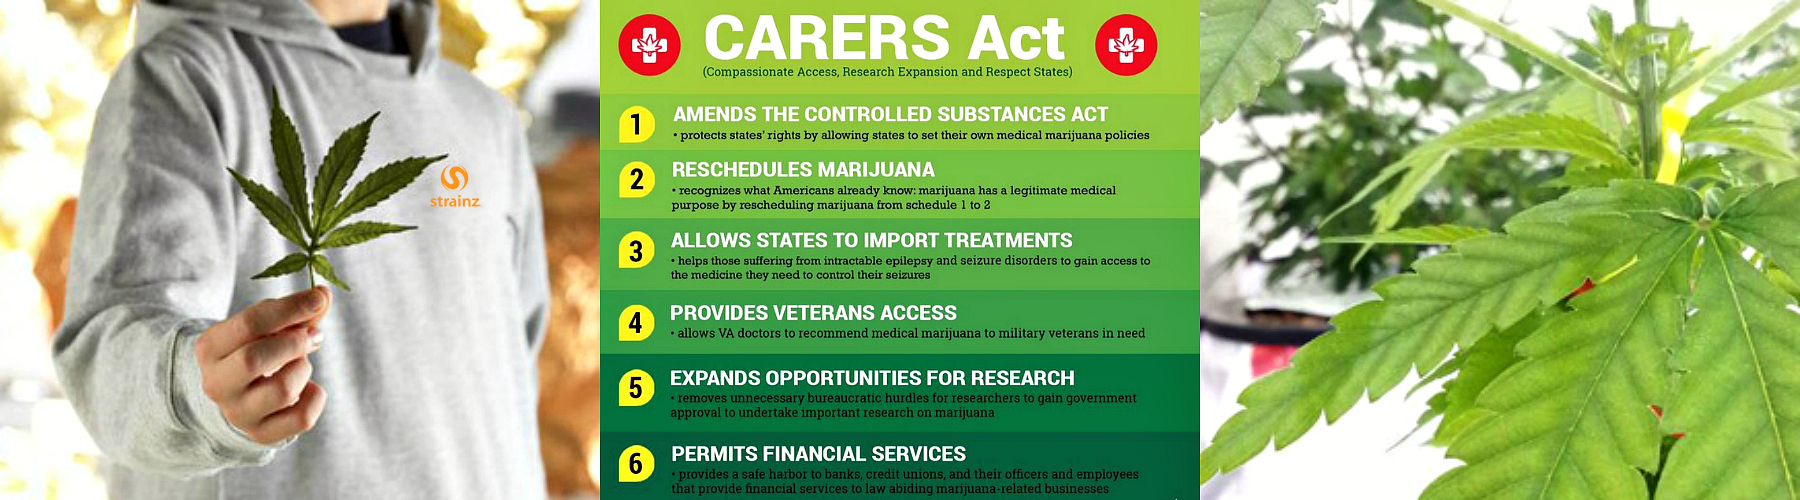 Carers Act Image